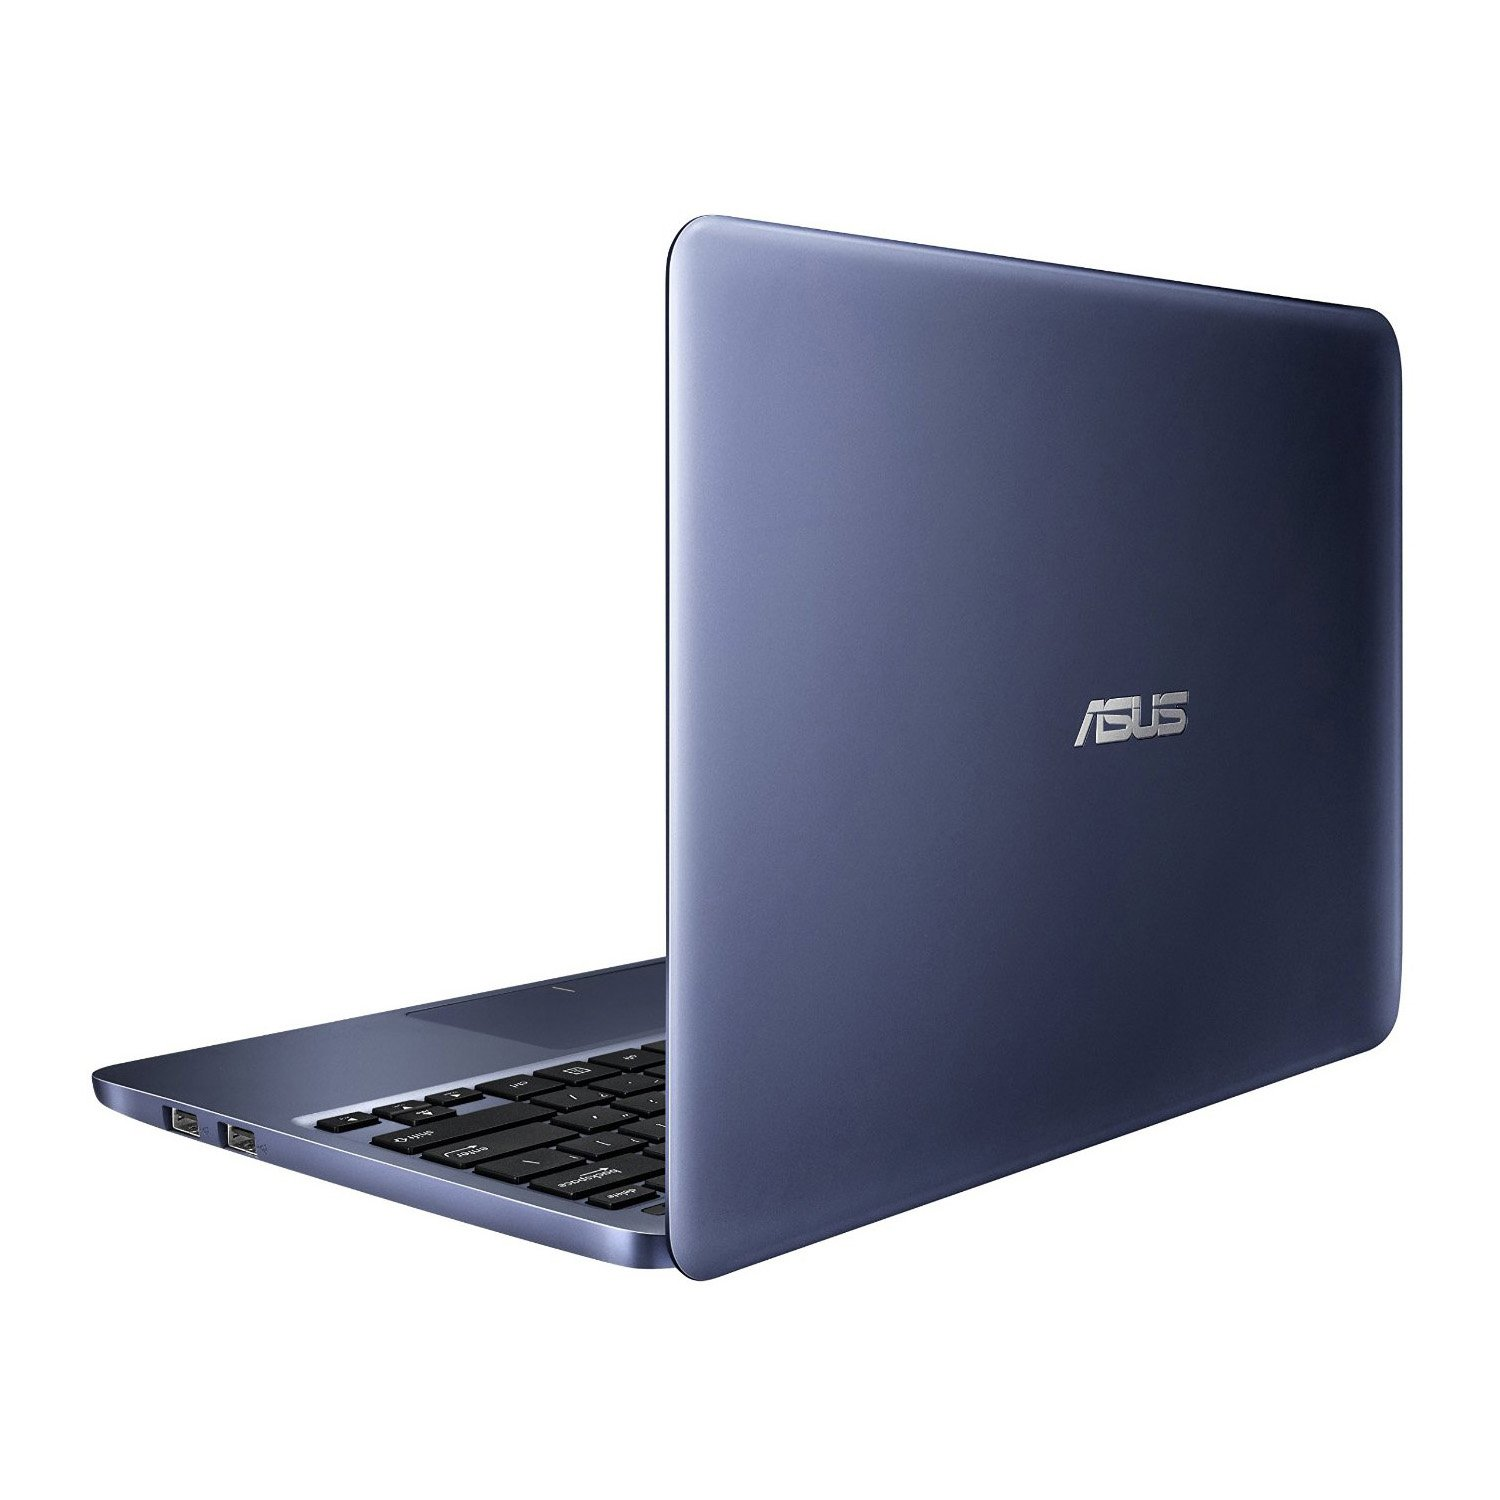 Amazon.com: Asus - 11.6 Laptop - Intel Atom - 2GB Memory - 32GB Flash Memory - Blue: Computers & Accessories